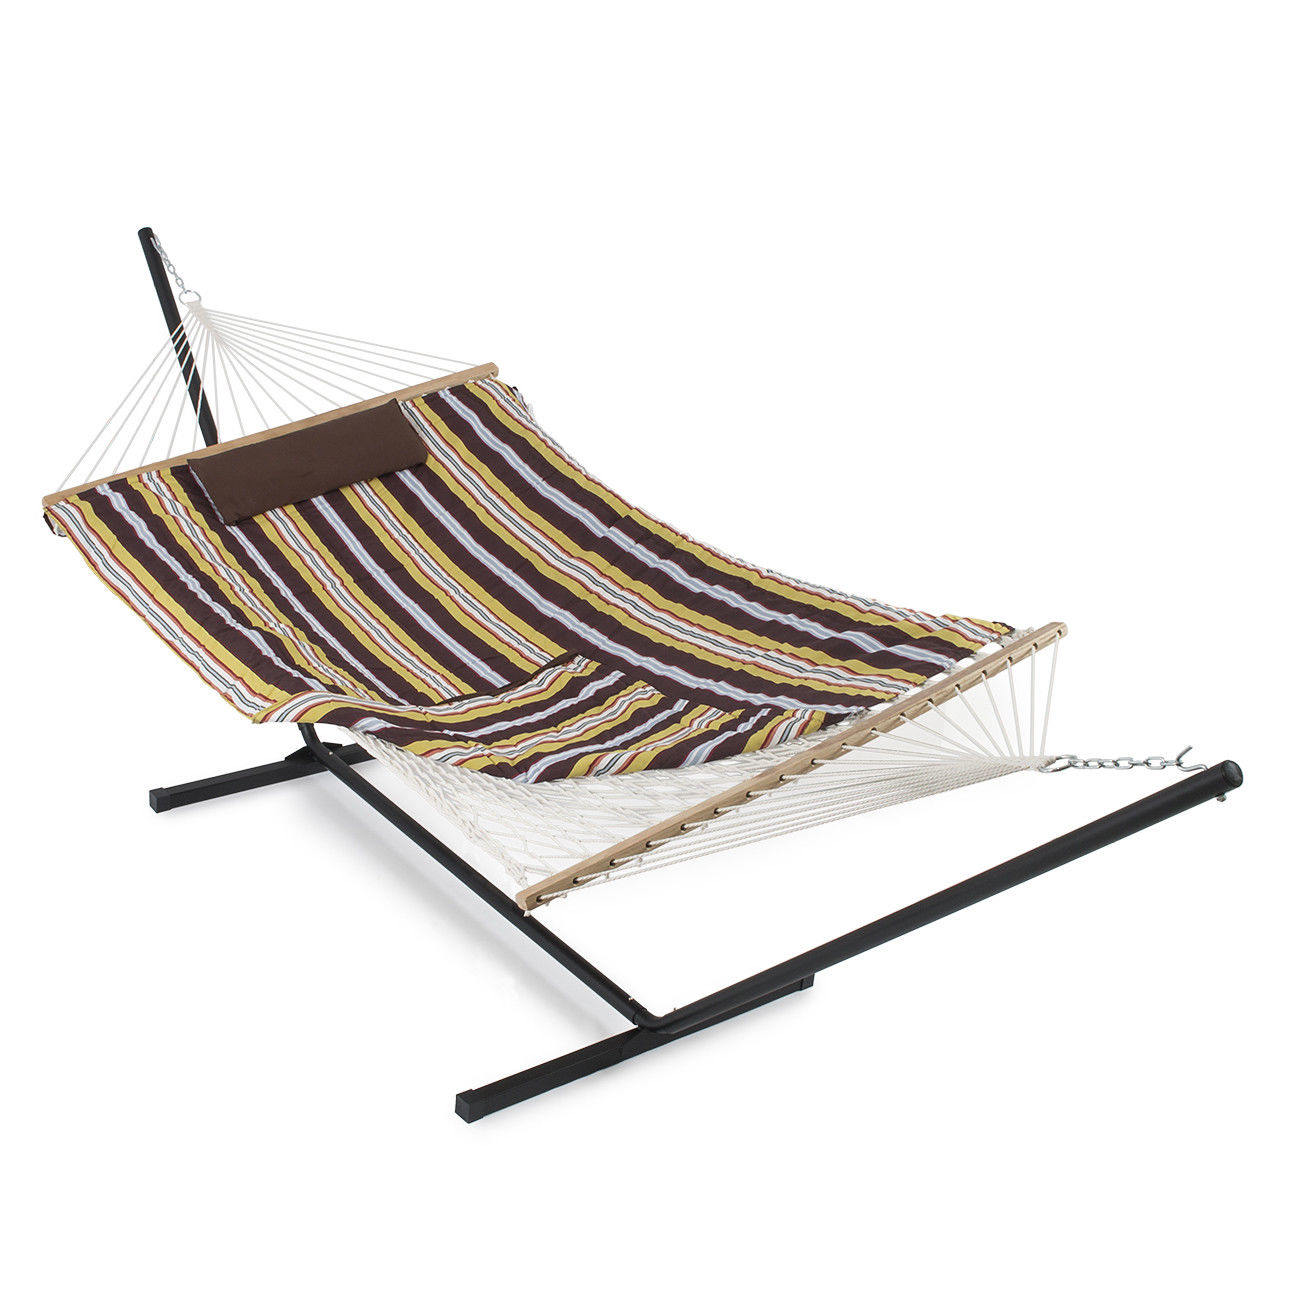 "GHP Desert Stripes 142""L×52""W×46.5""H Hammock Stand with Stand Pad and Pillow"